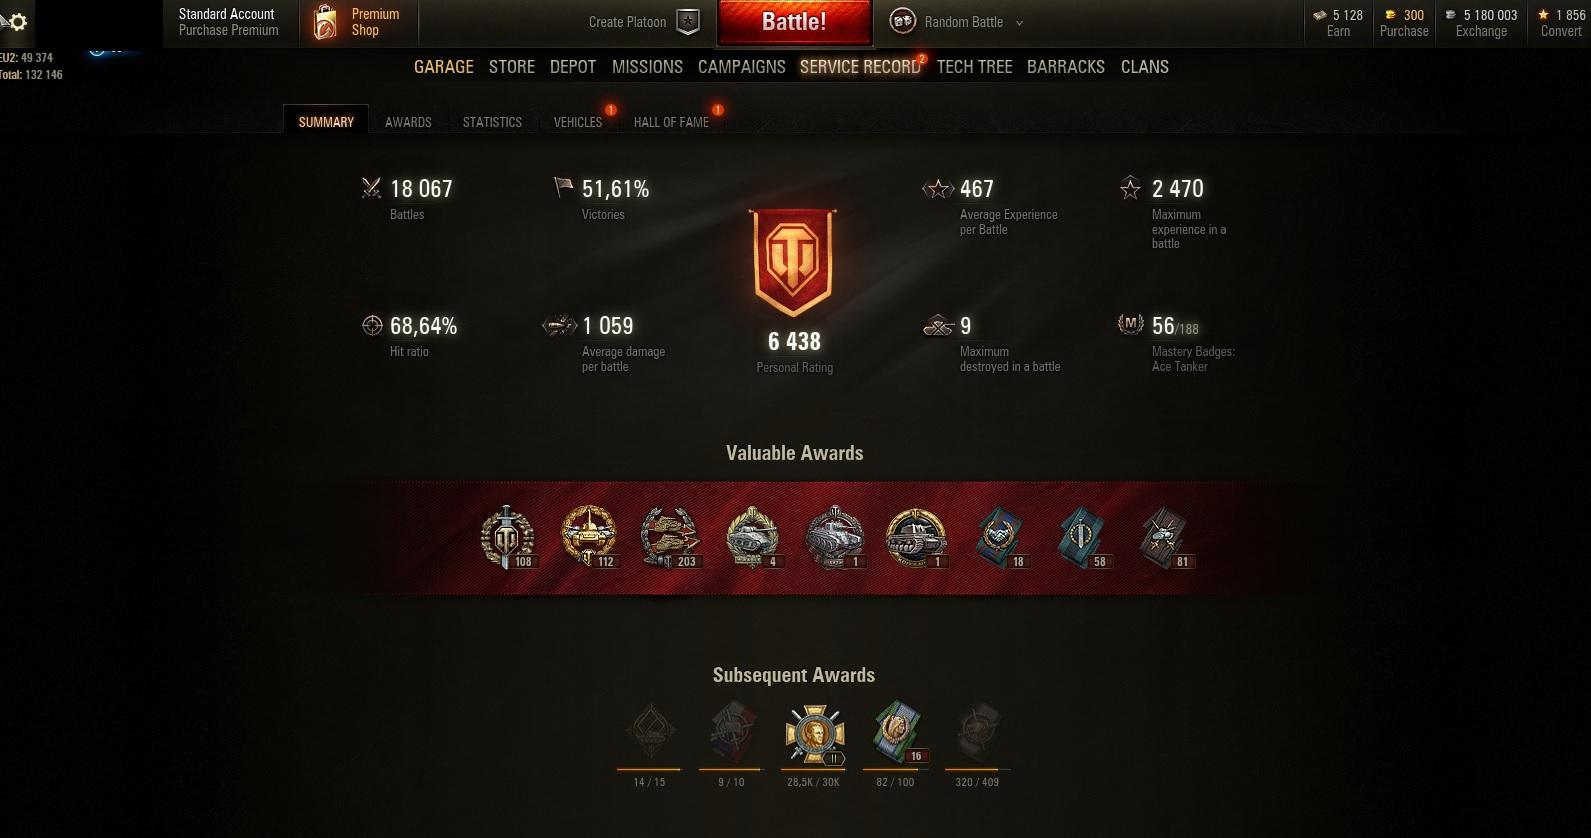 Personal Rating:6438! ! Victories:51,61%!! Tanks:28! T26E4 SuperPershing, T-50-2 , TKS z n.k.m 20 mm!